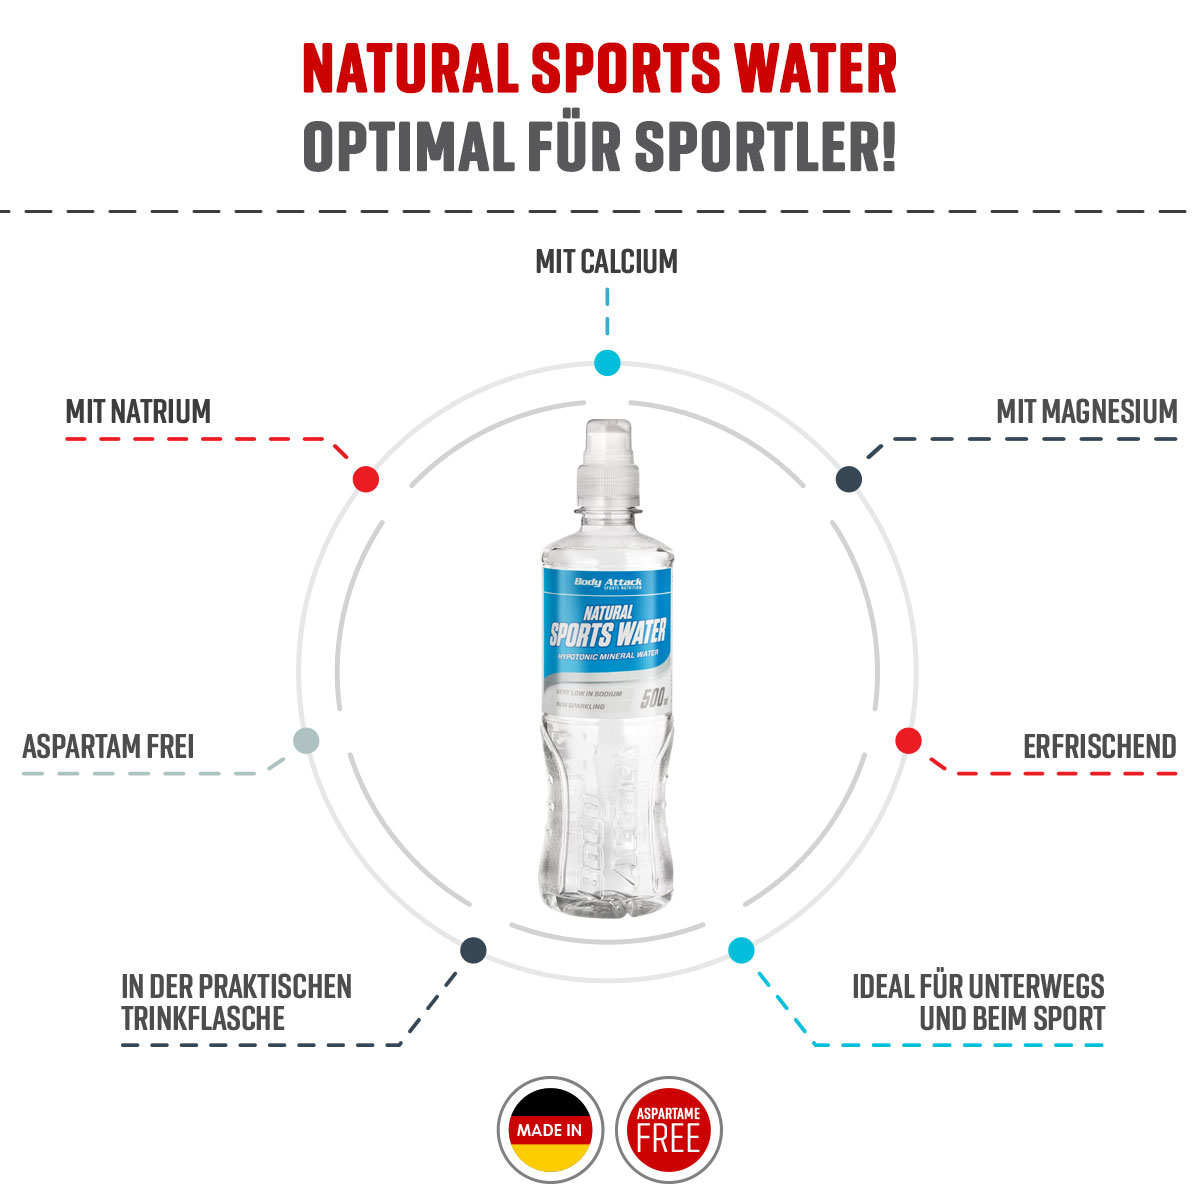 Natural Sports Water Info